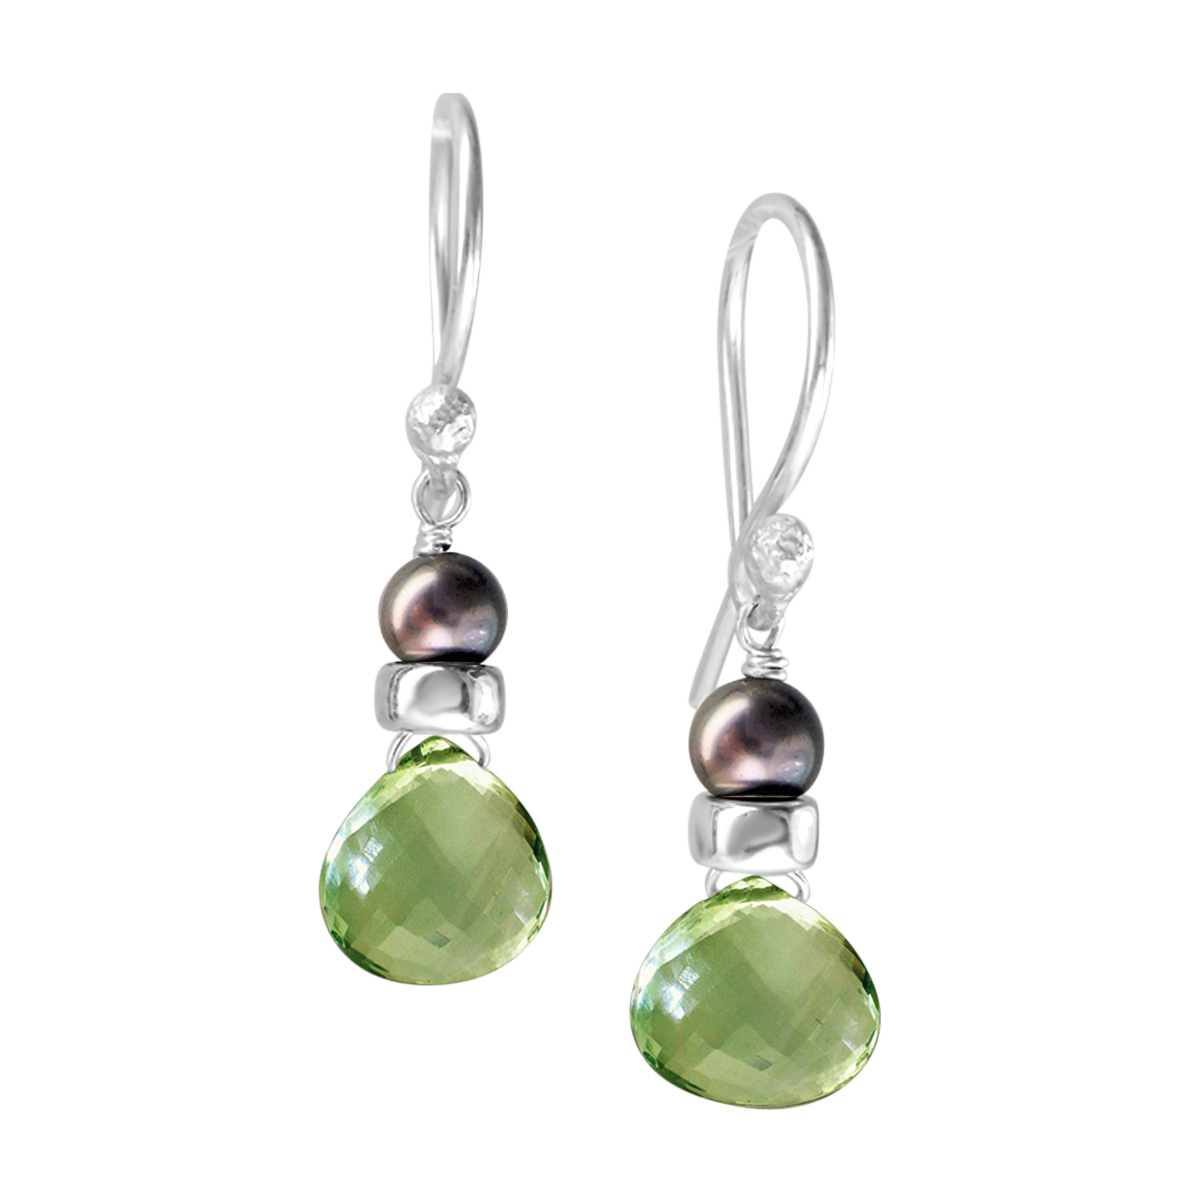 Perfume Bottle green amethyst pearl earrings